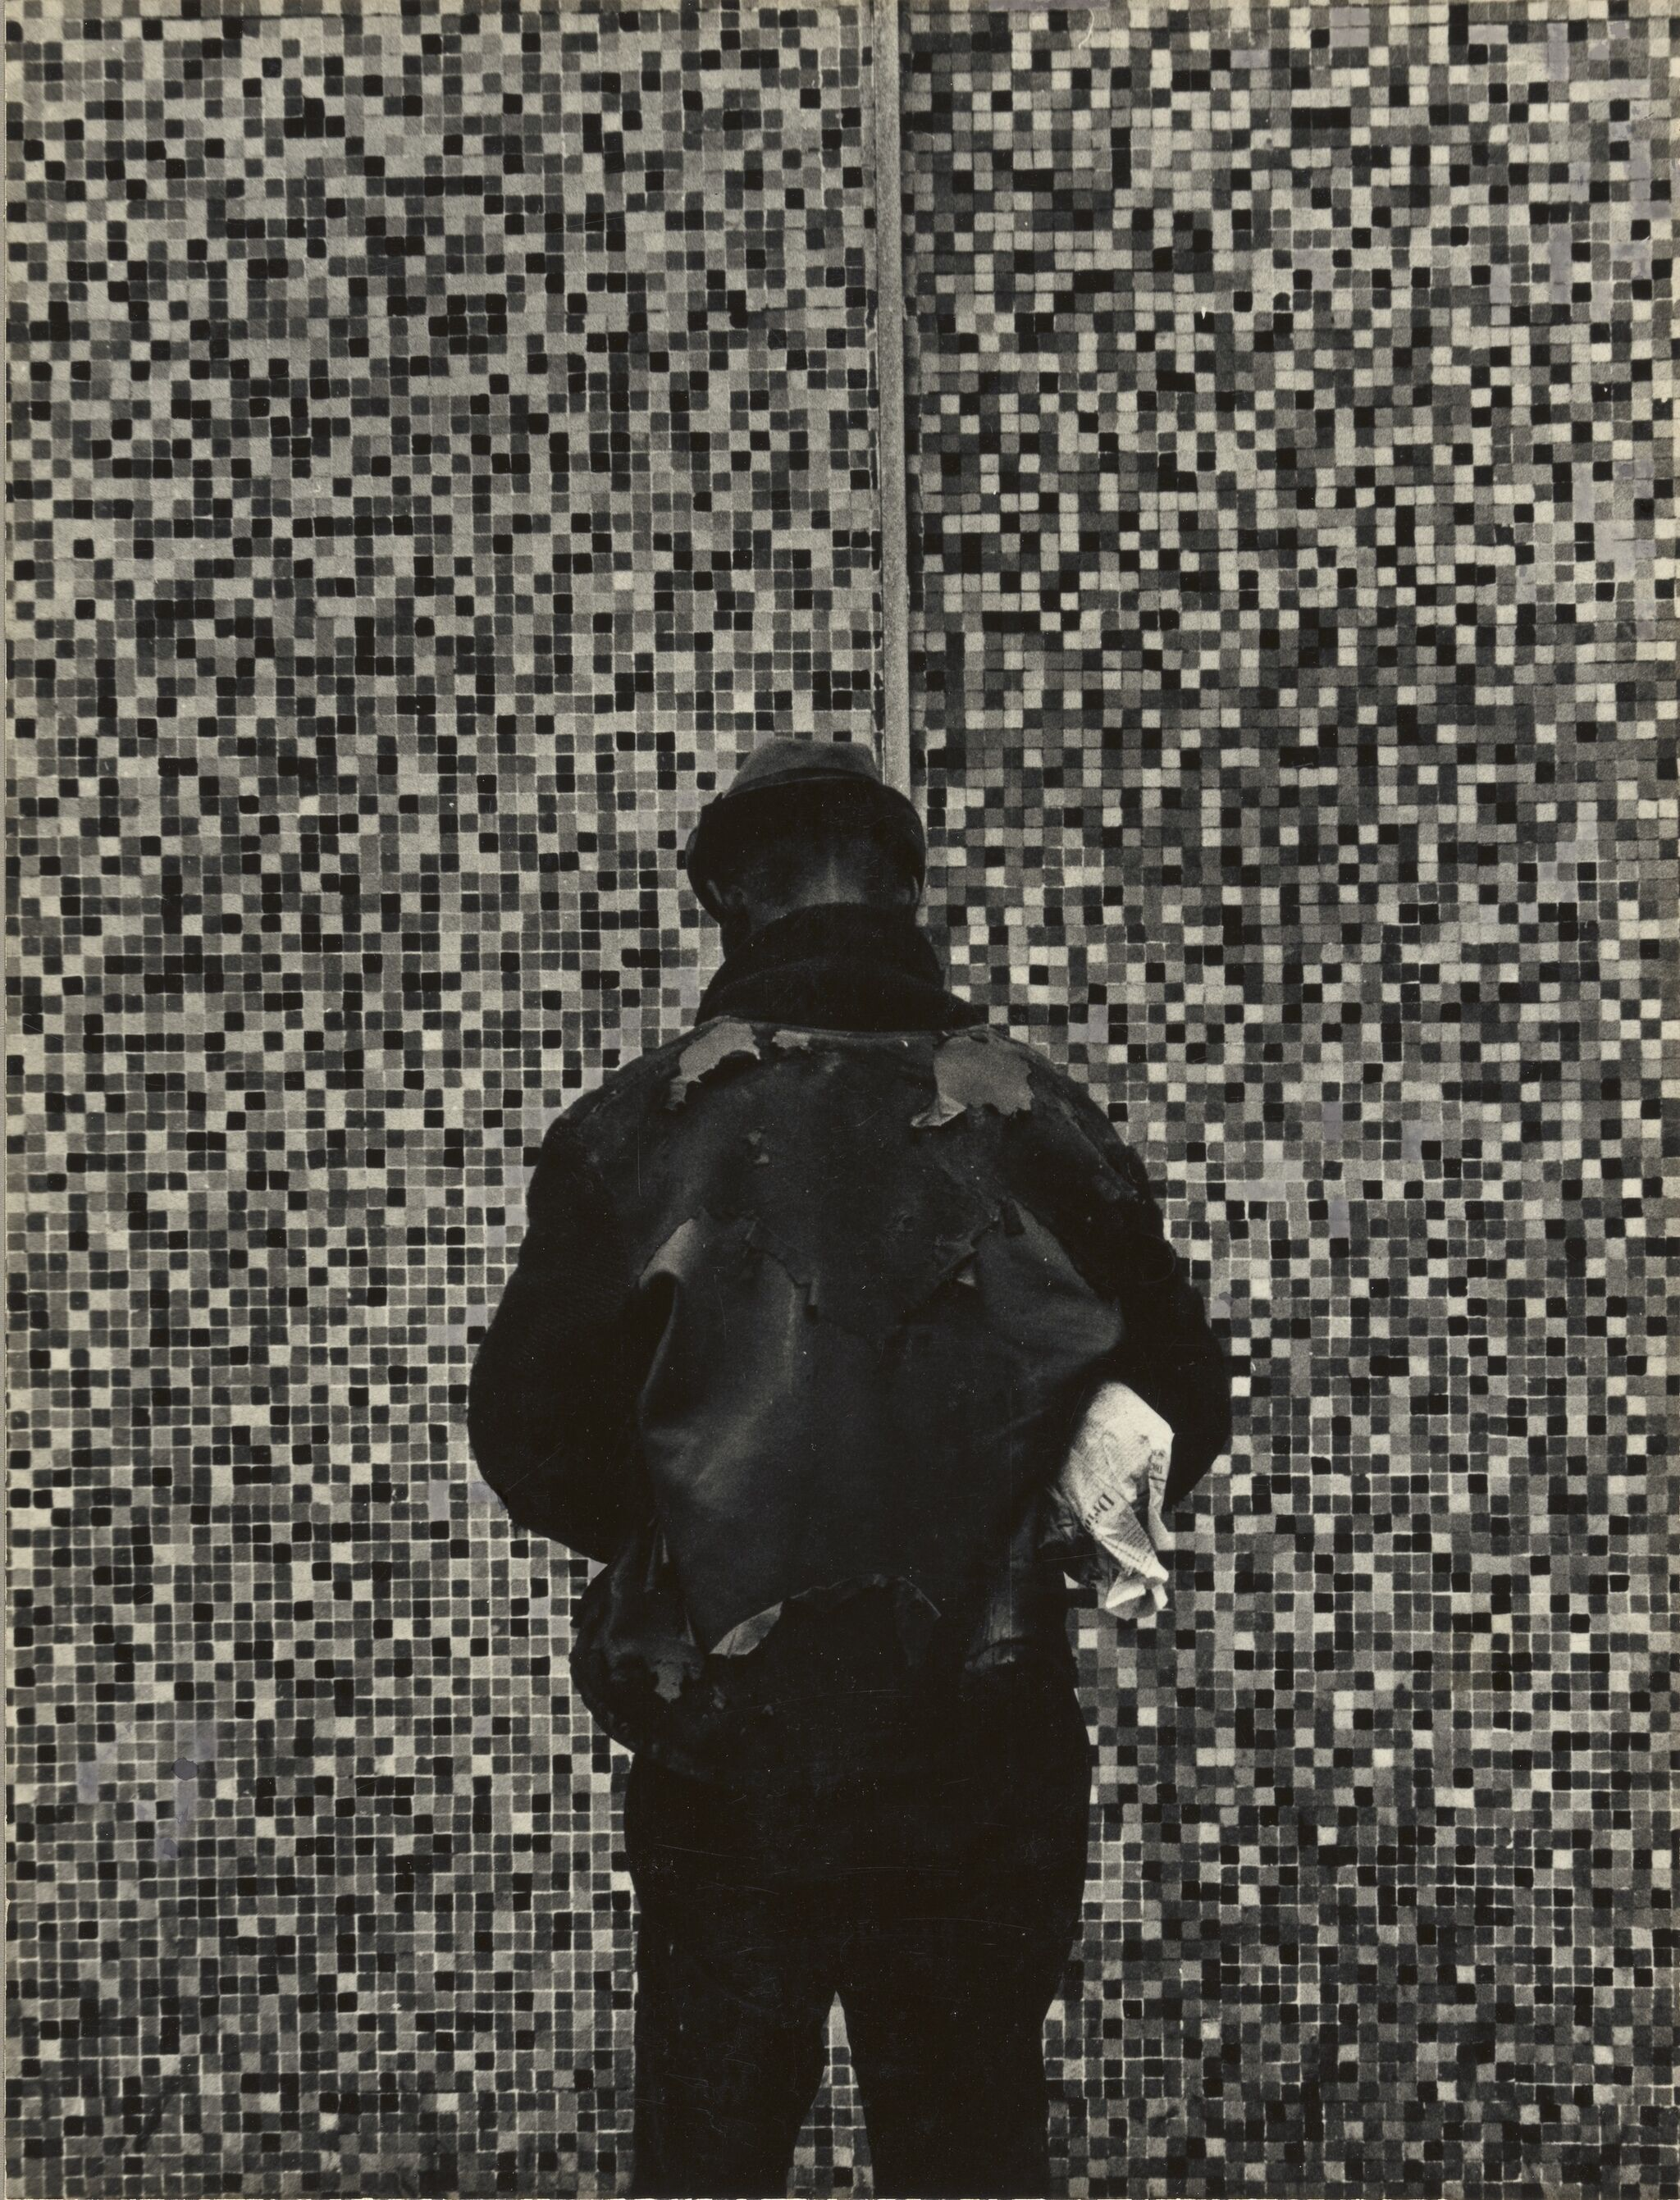 A person wearing a fedora and backpack is turned away, facing a tiled wall.